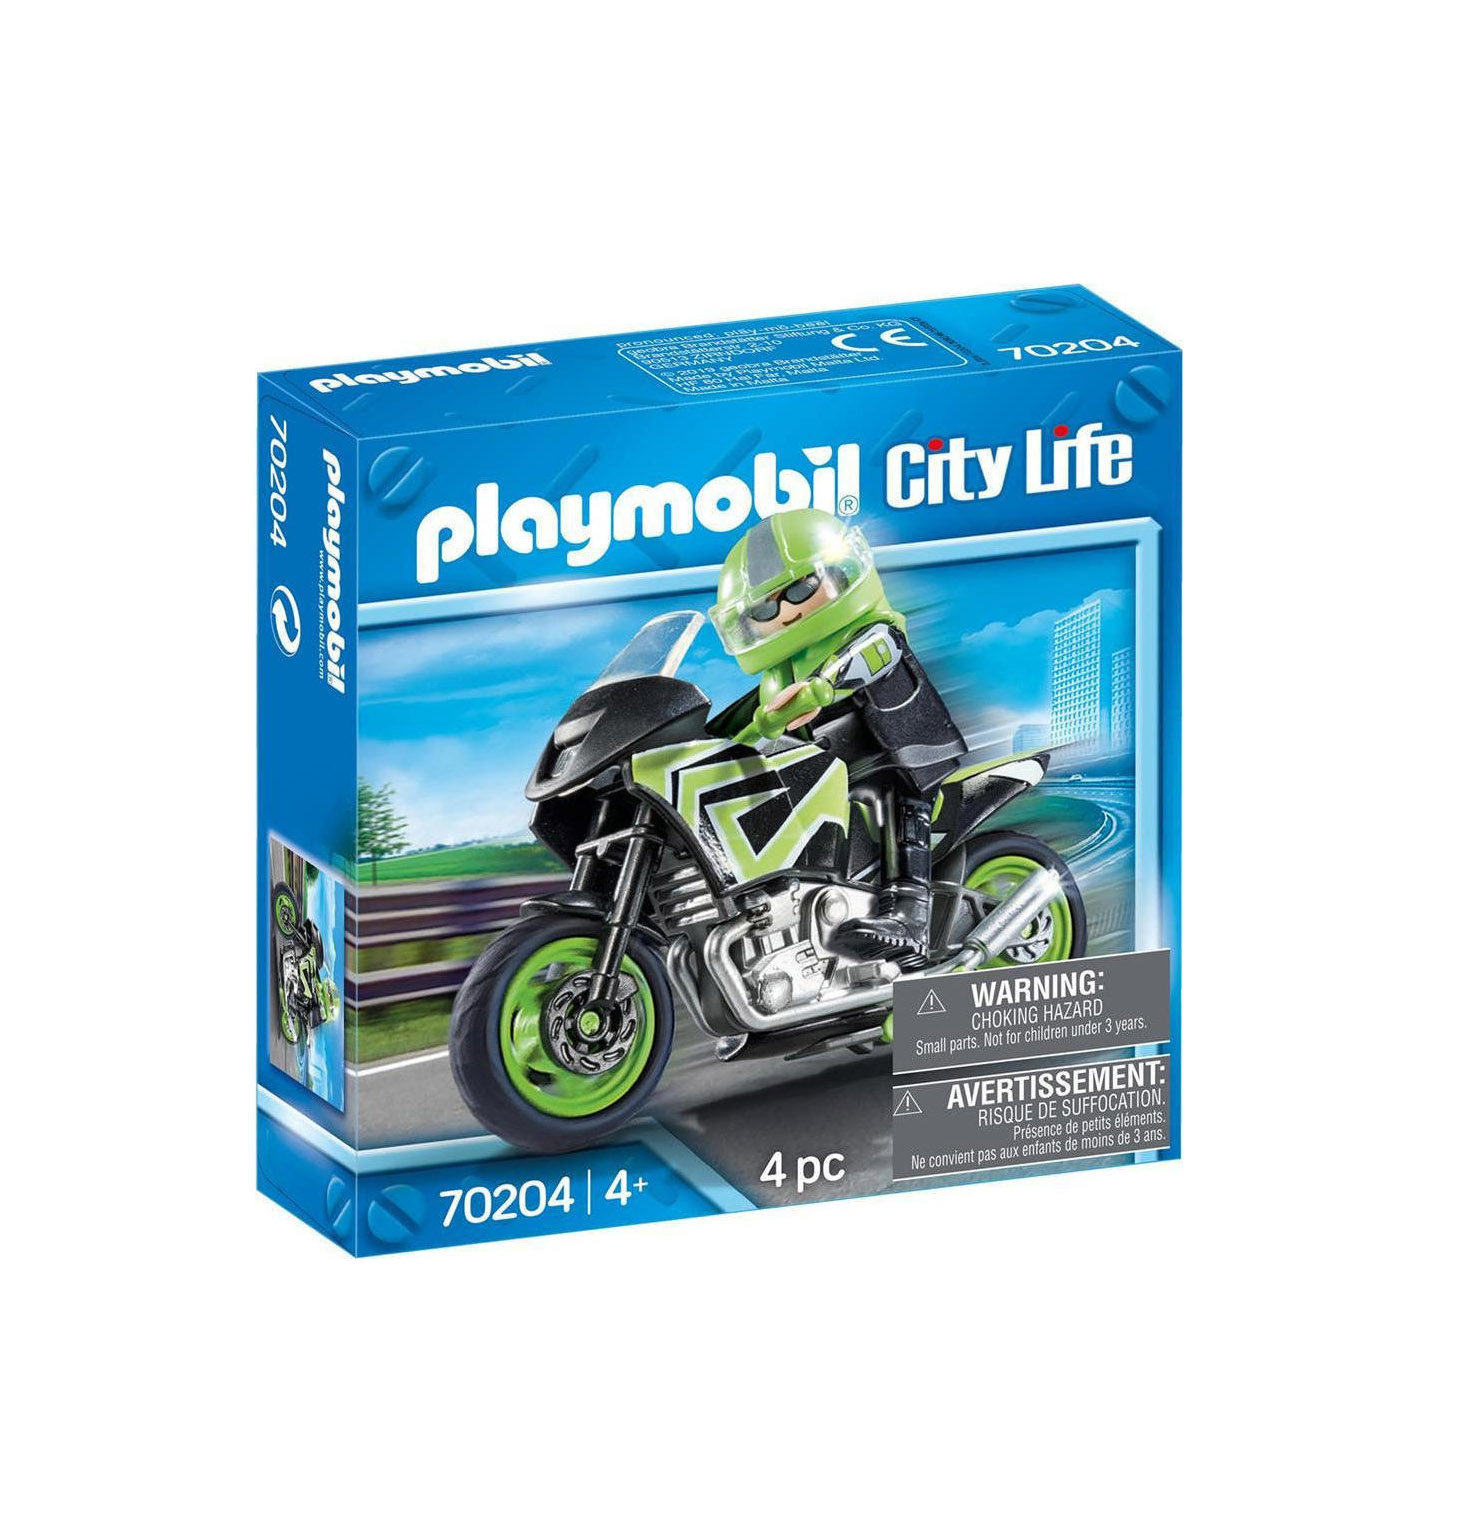 Playmobil City Life: Motorcycle with Ride 70204